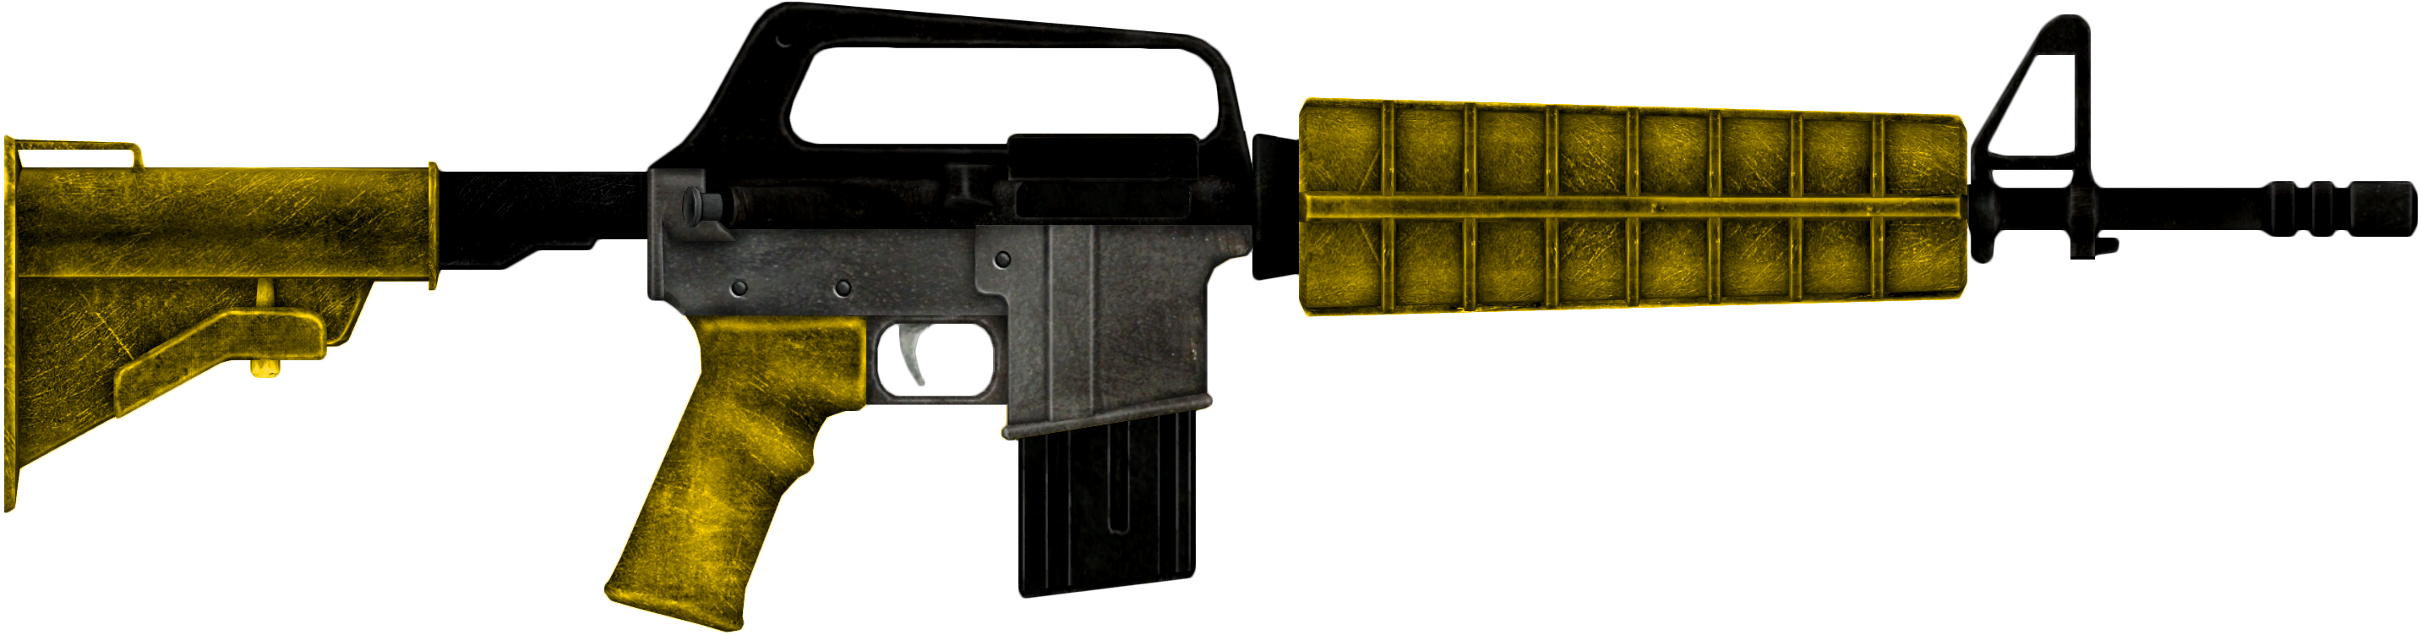 H-H Tools Nail Carbine at Fallout New Vegas - mods and community